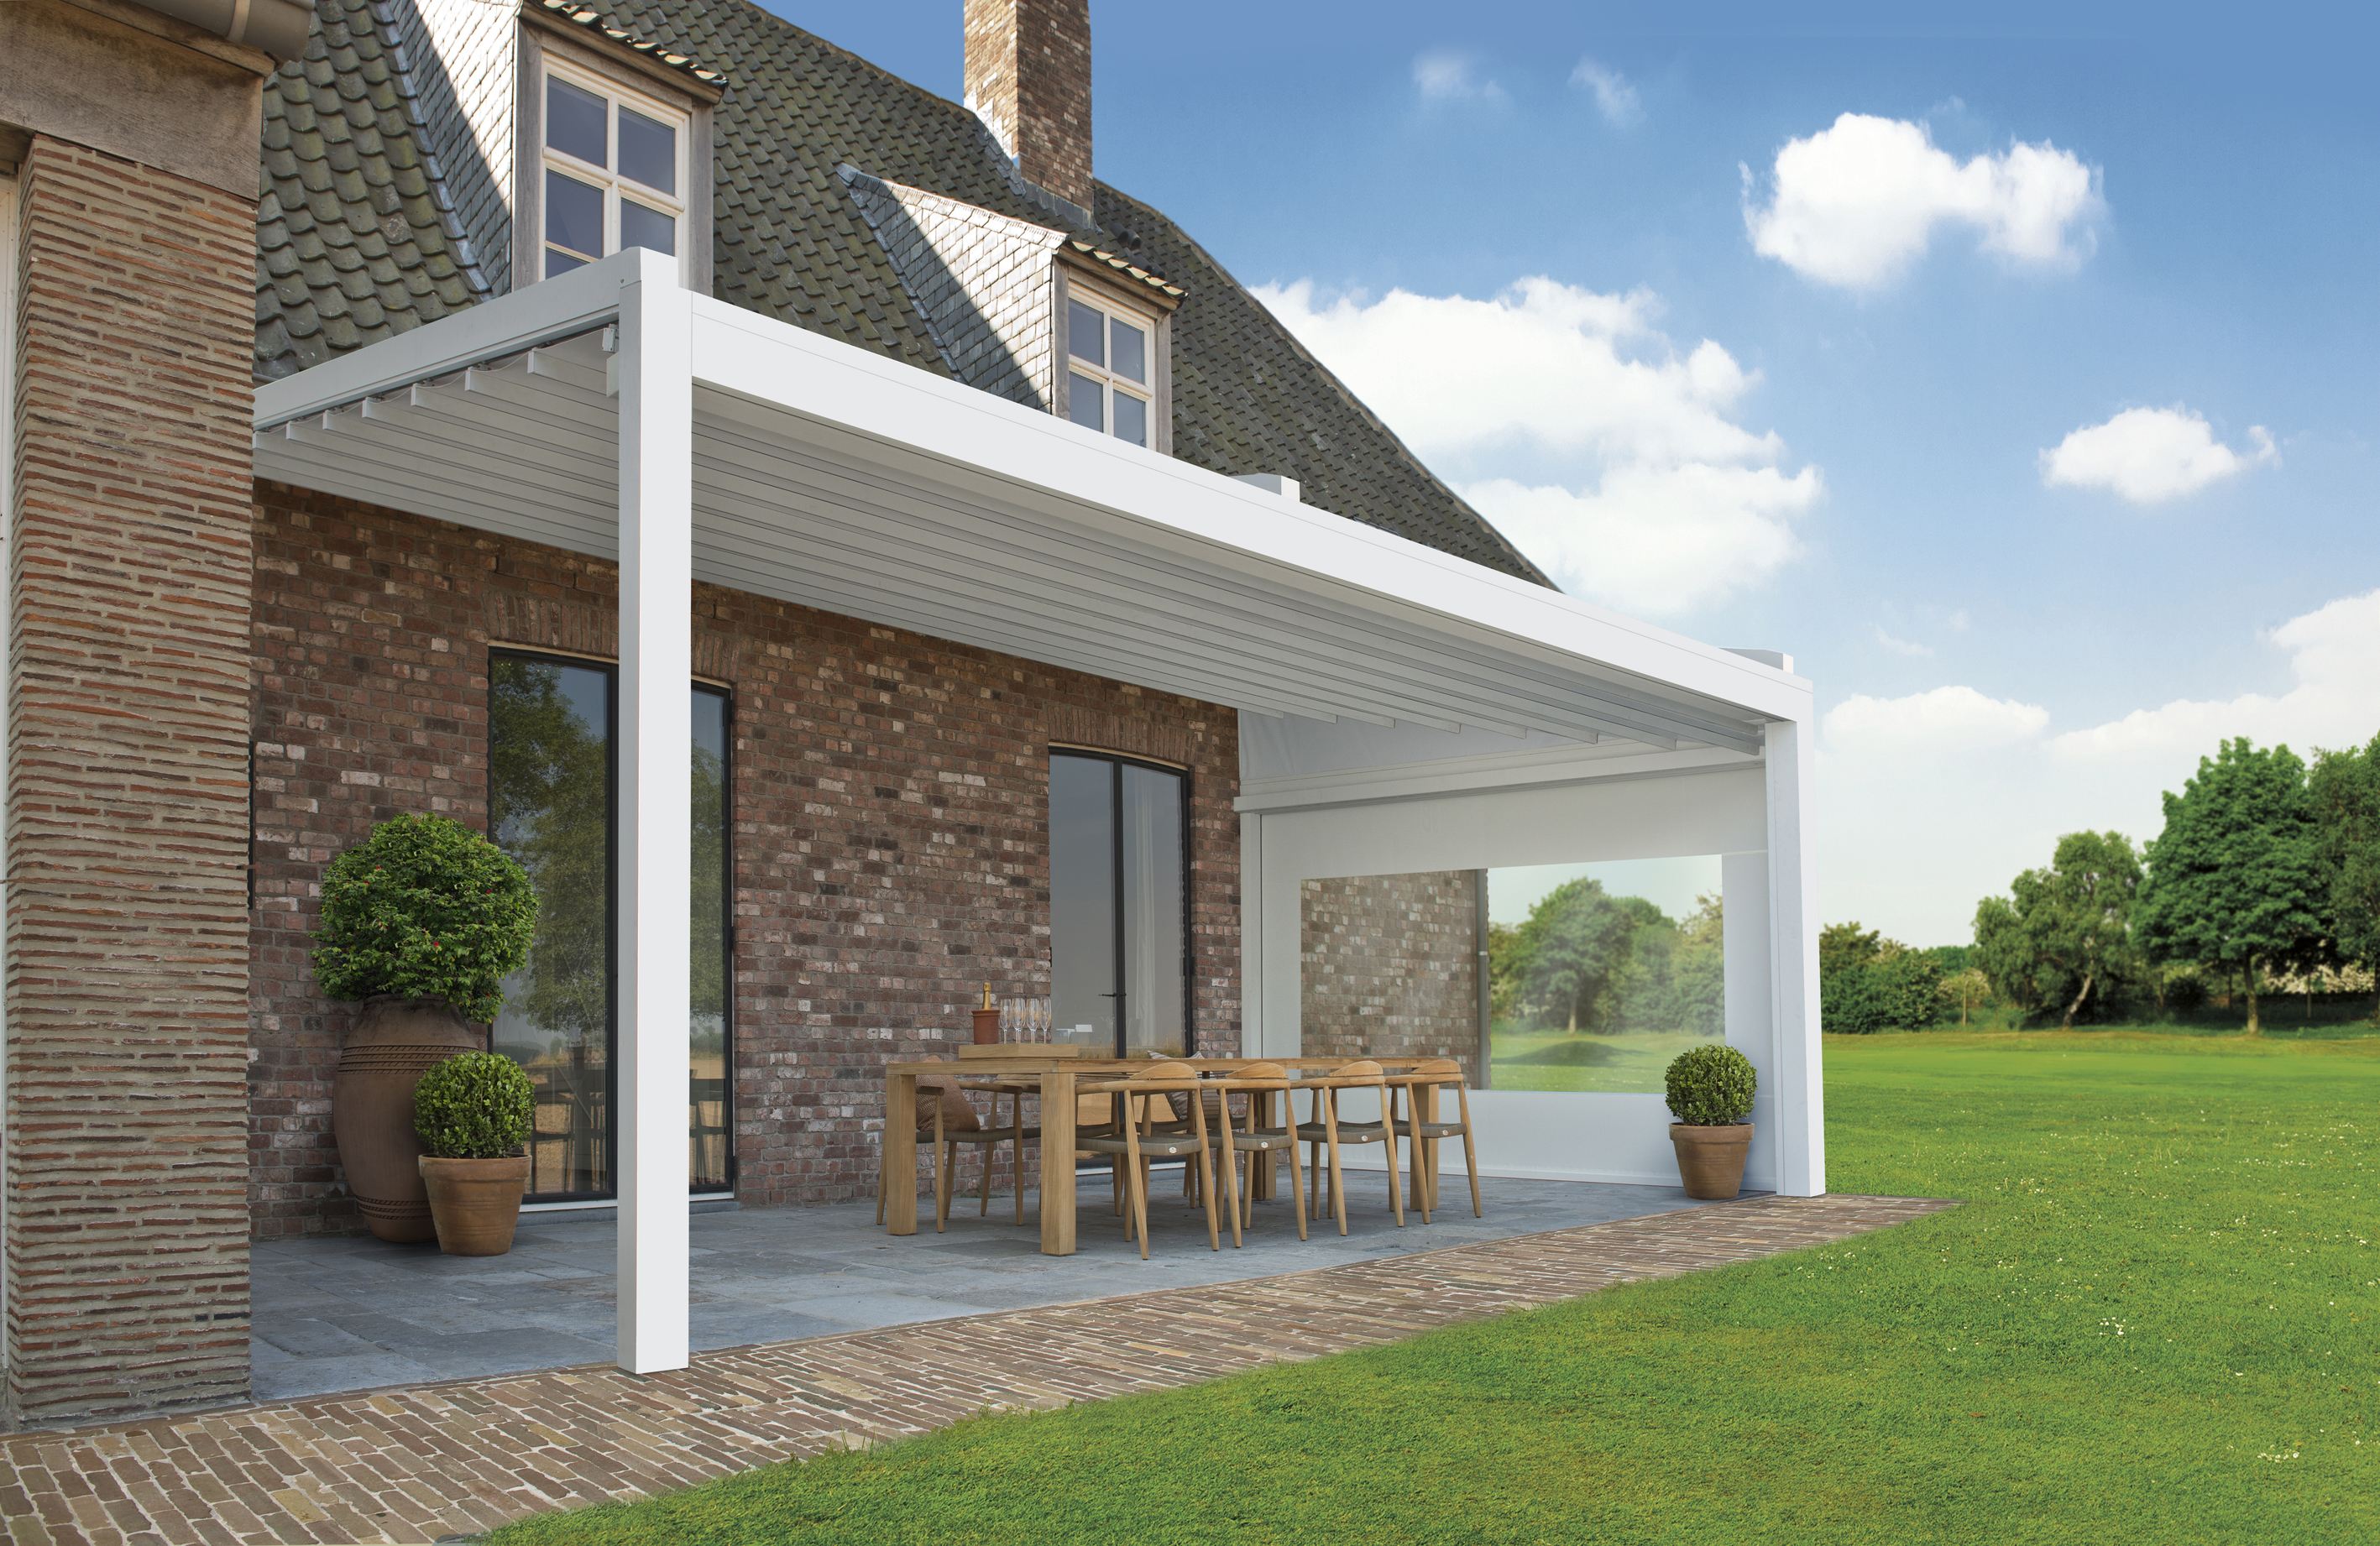 Brustor B-500 Outdoor Living white - visual 2014 - MONT#2ACE85